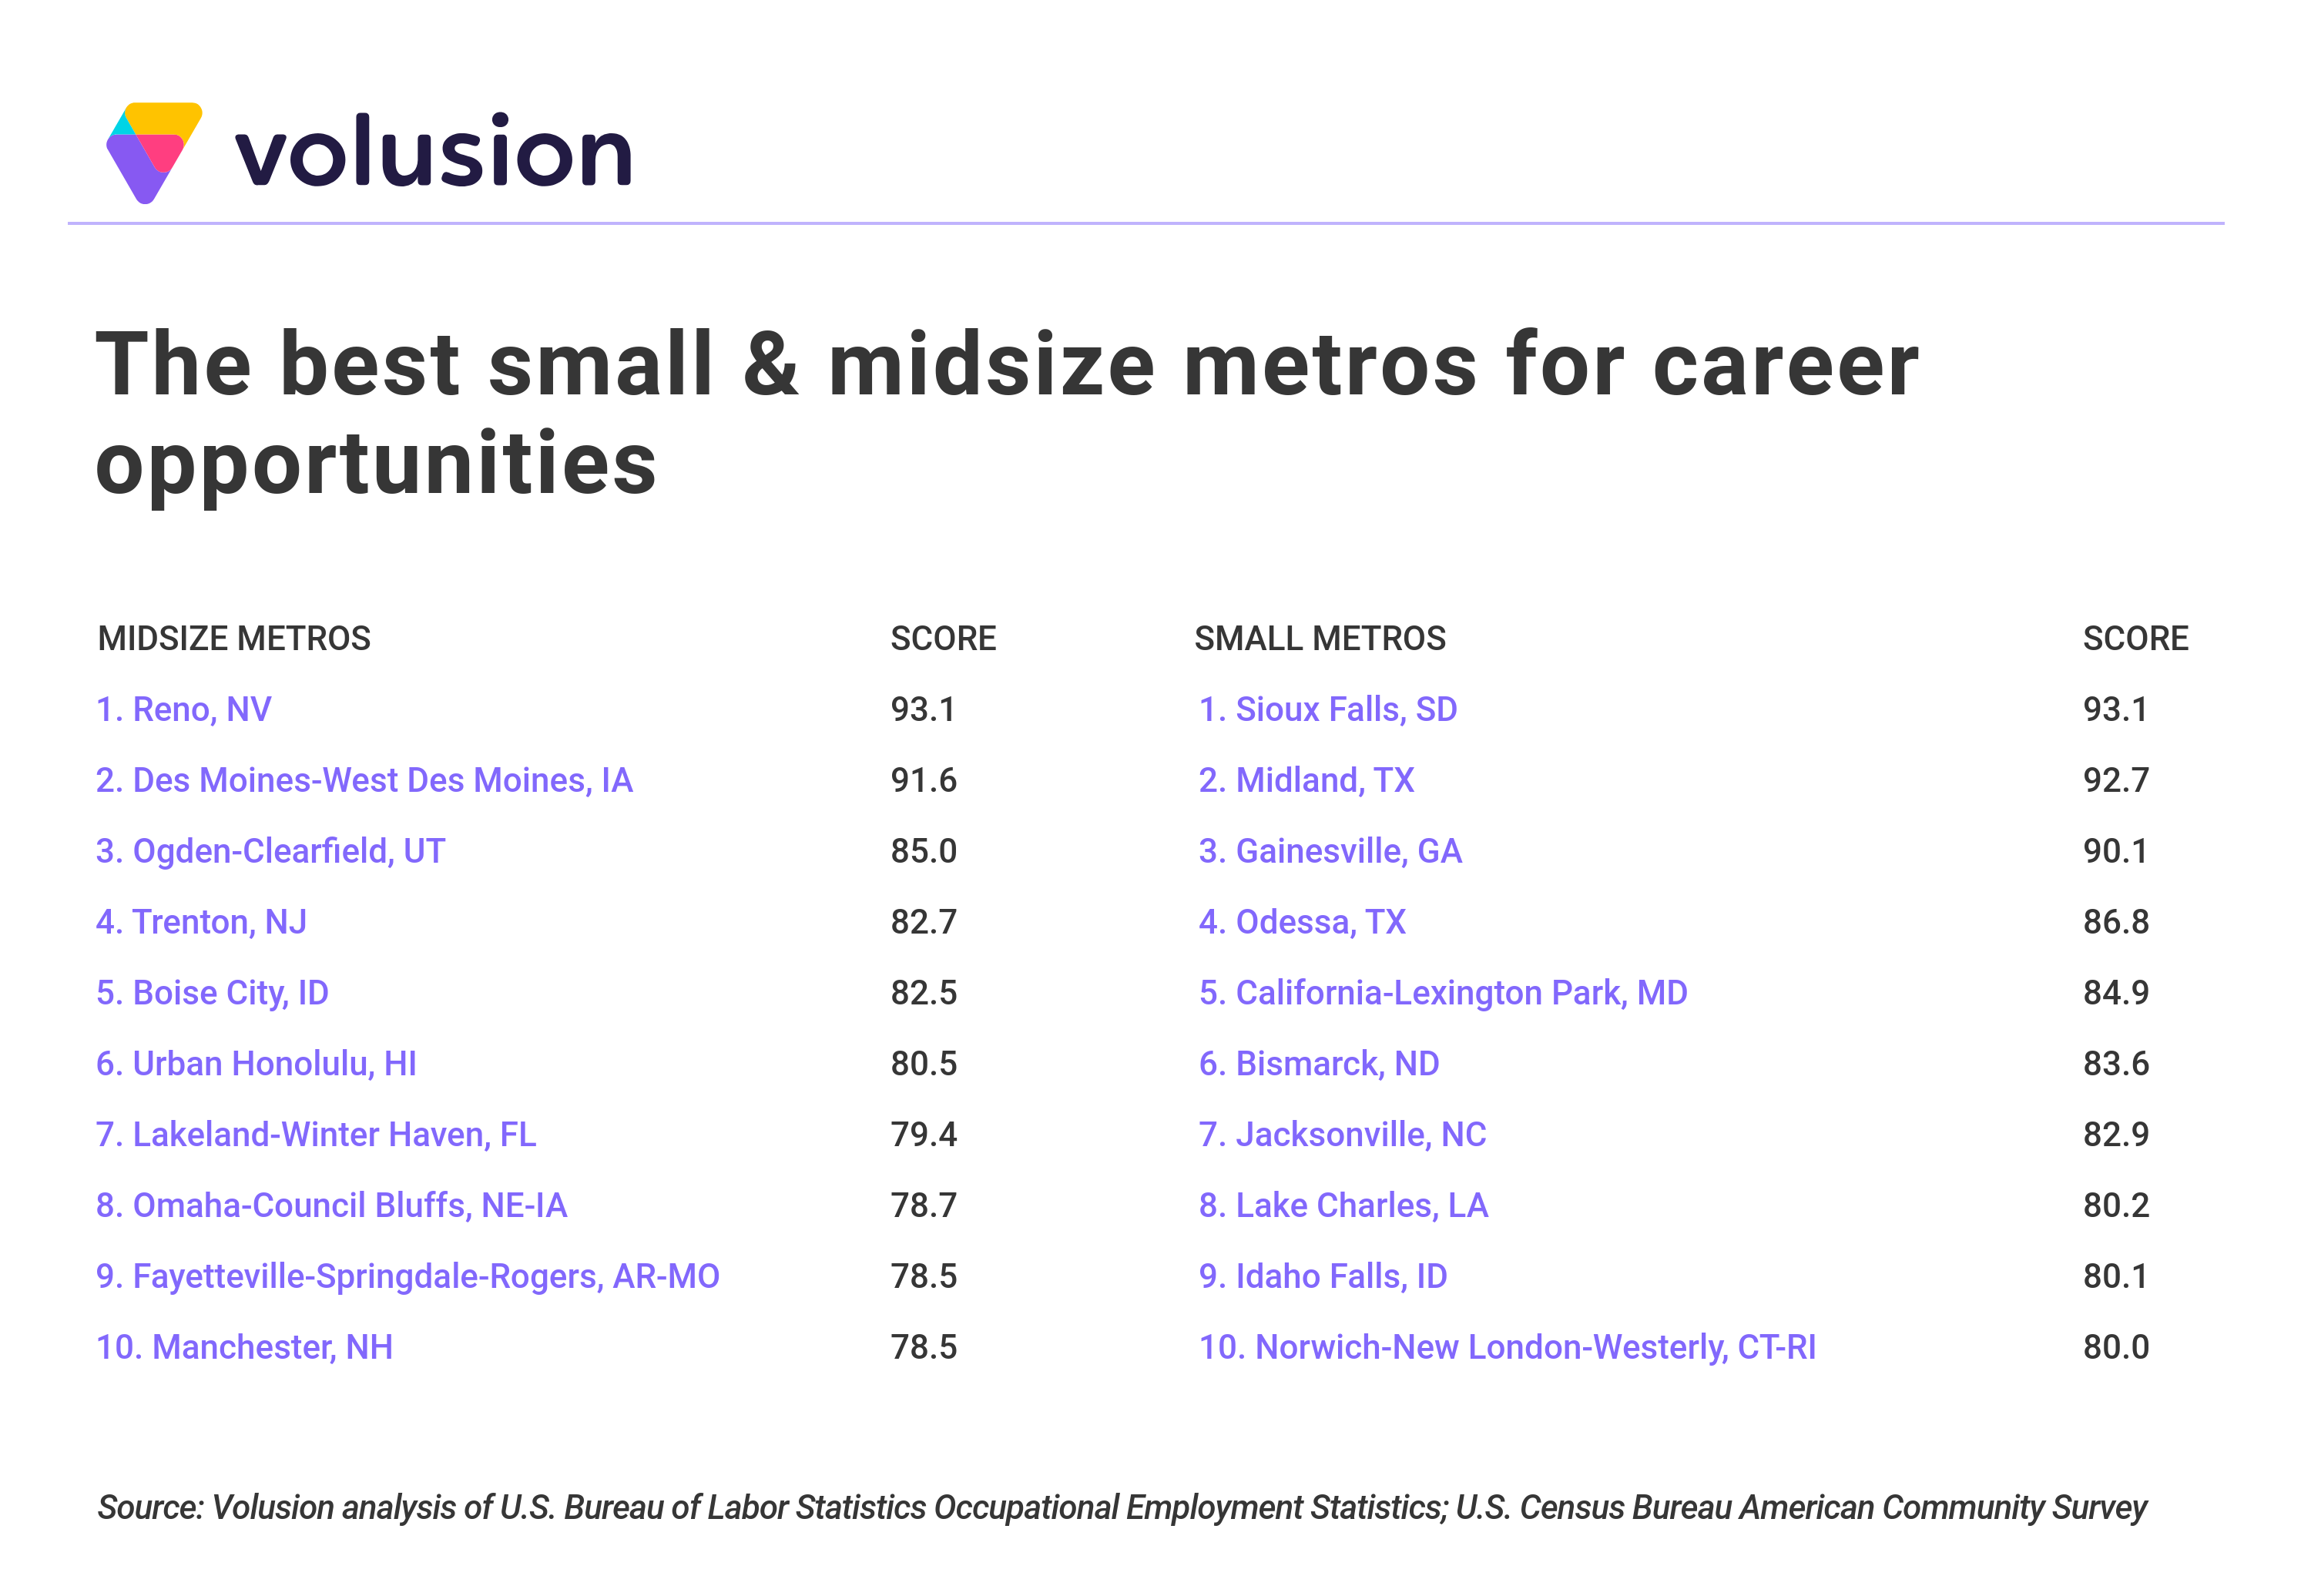 List of best small- and midsize metros for career opportunities